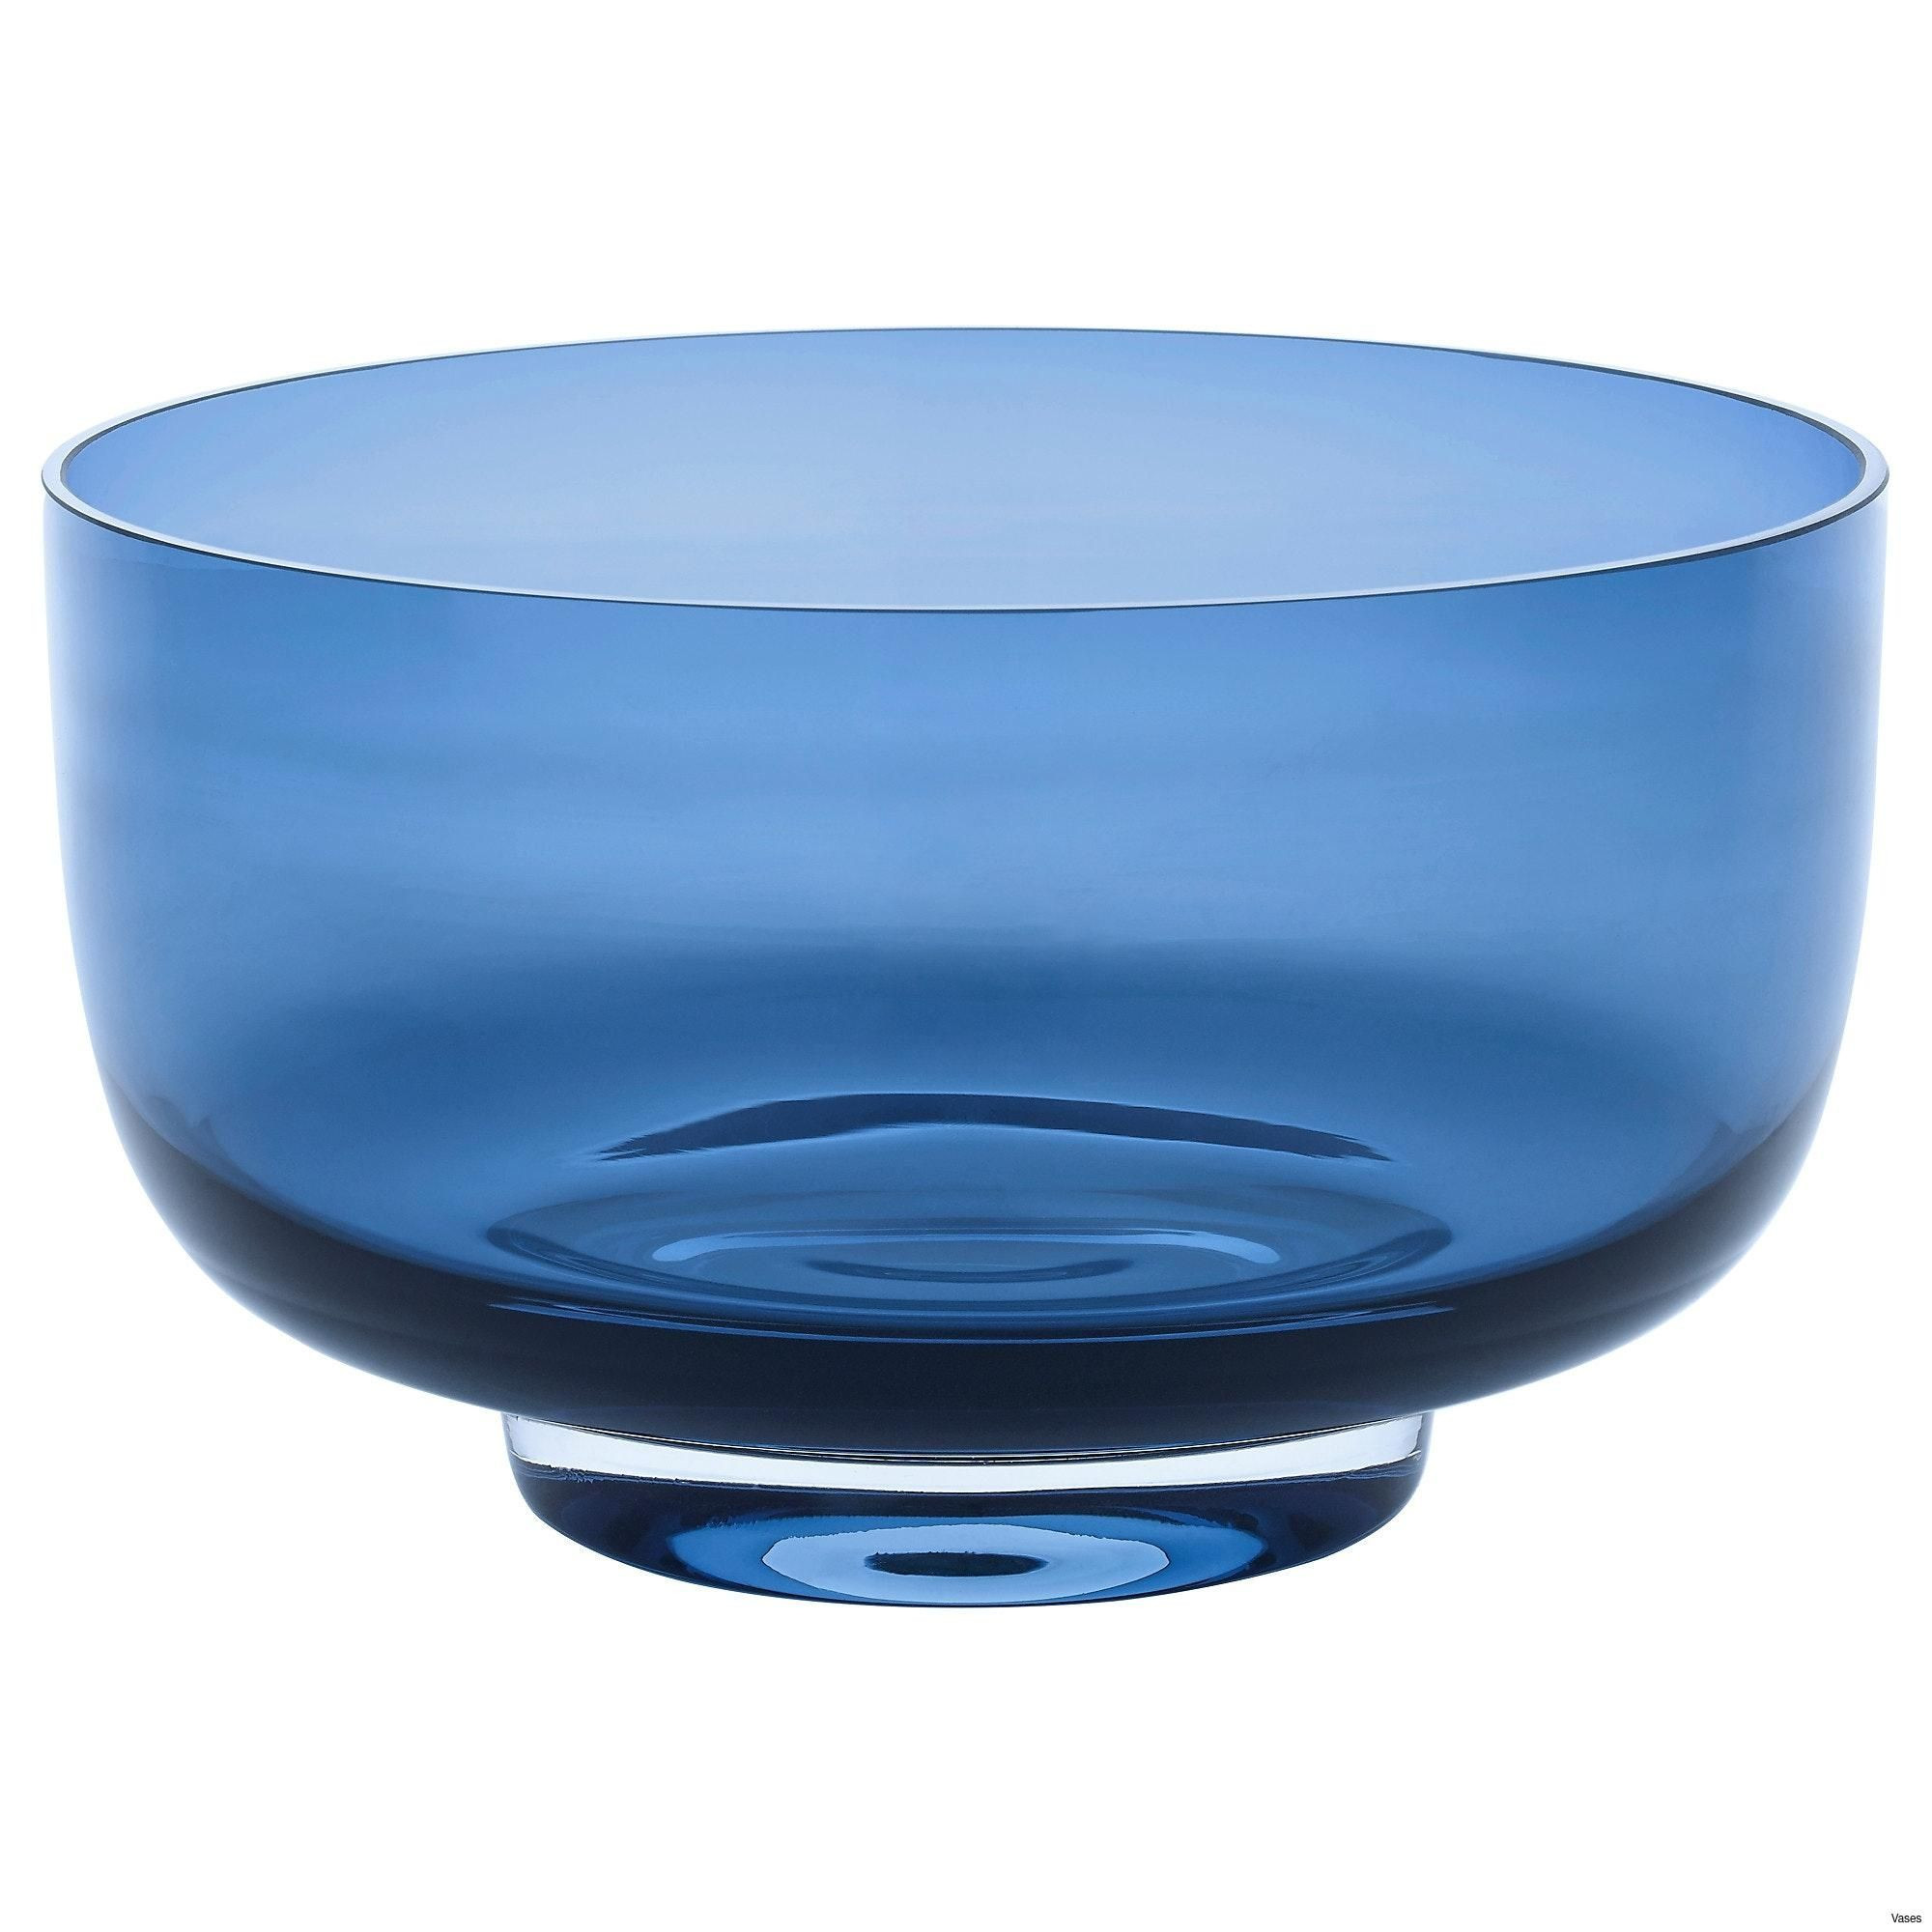 21 Nice Galle Vase Prices 2021 free download galle vase prices of art glass vase luxury decorative glass bowl new living room ikea in art glass vase luxury decorative glass bowl new living room ikea vases awesome pe s5h